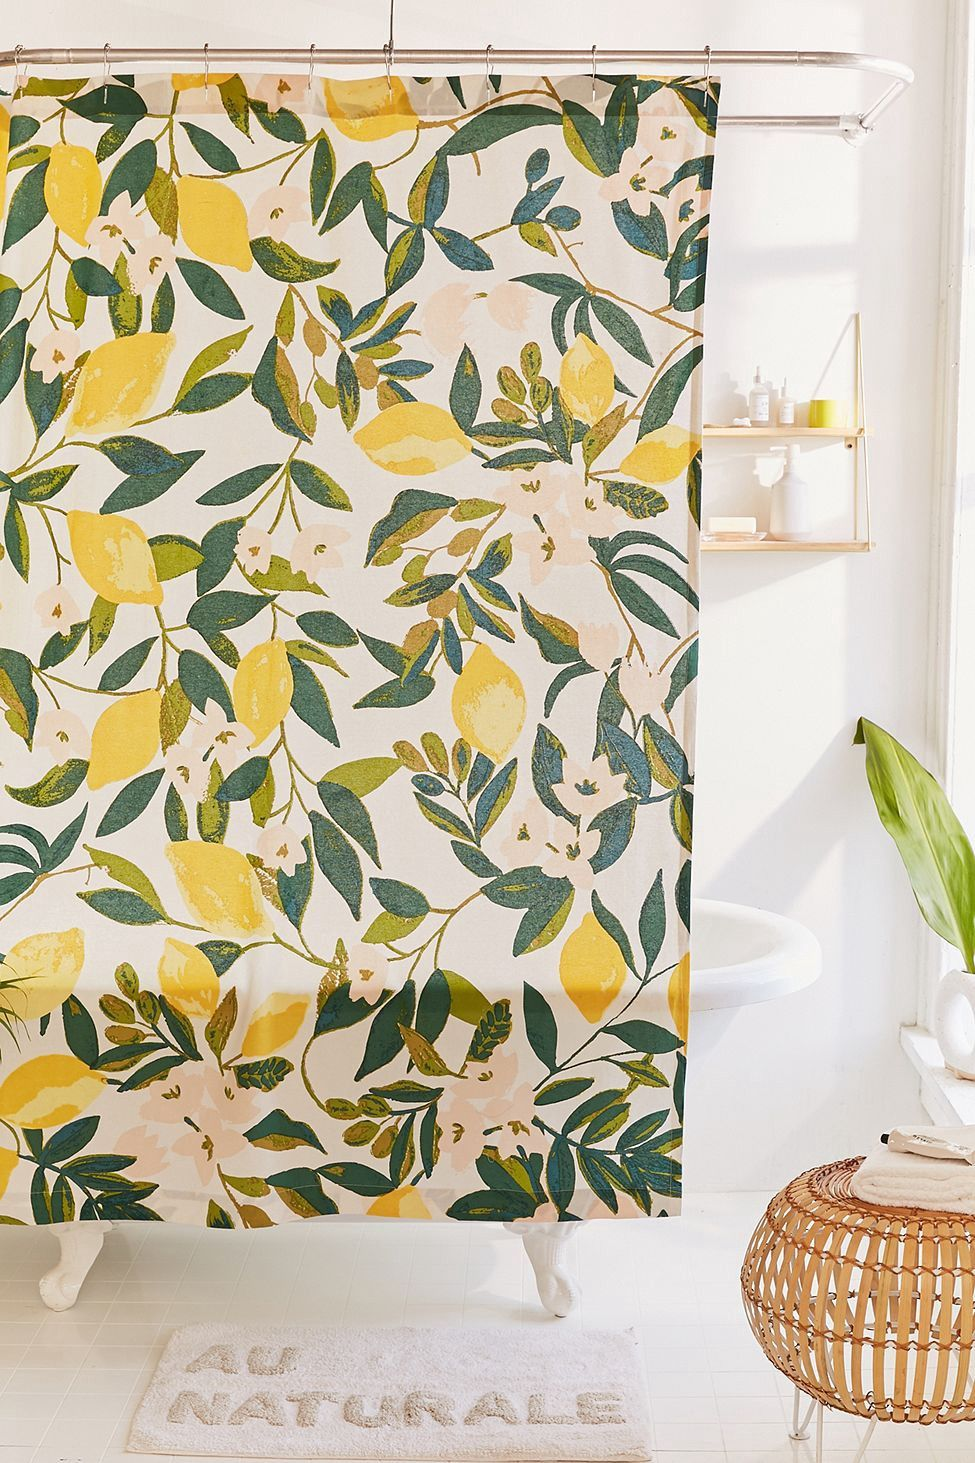 Urban Outfitters Allover Fruits Shower Curtain Peaches 72x72